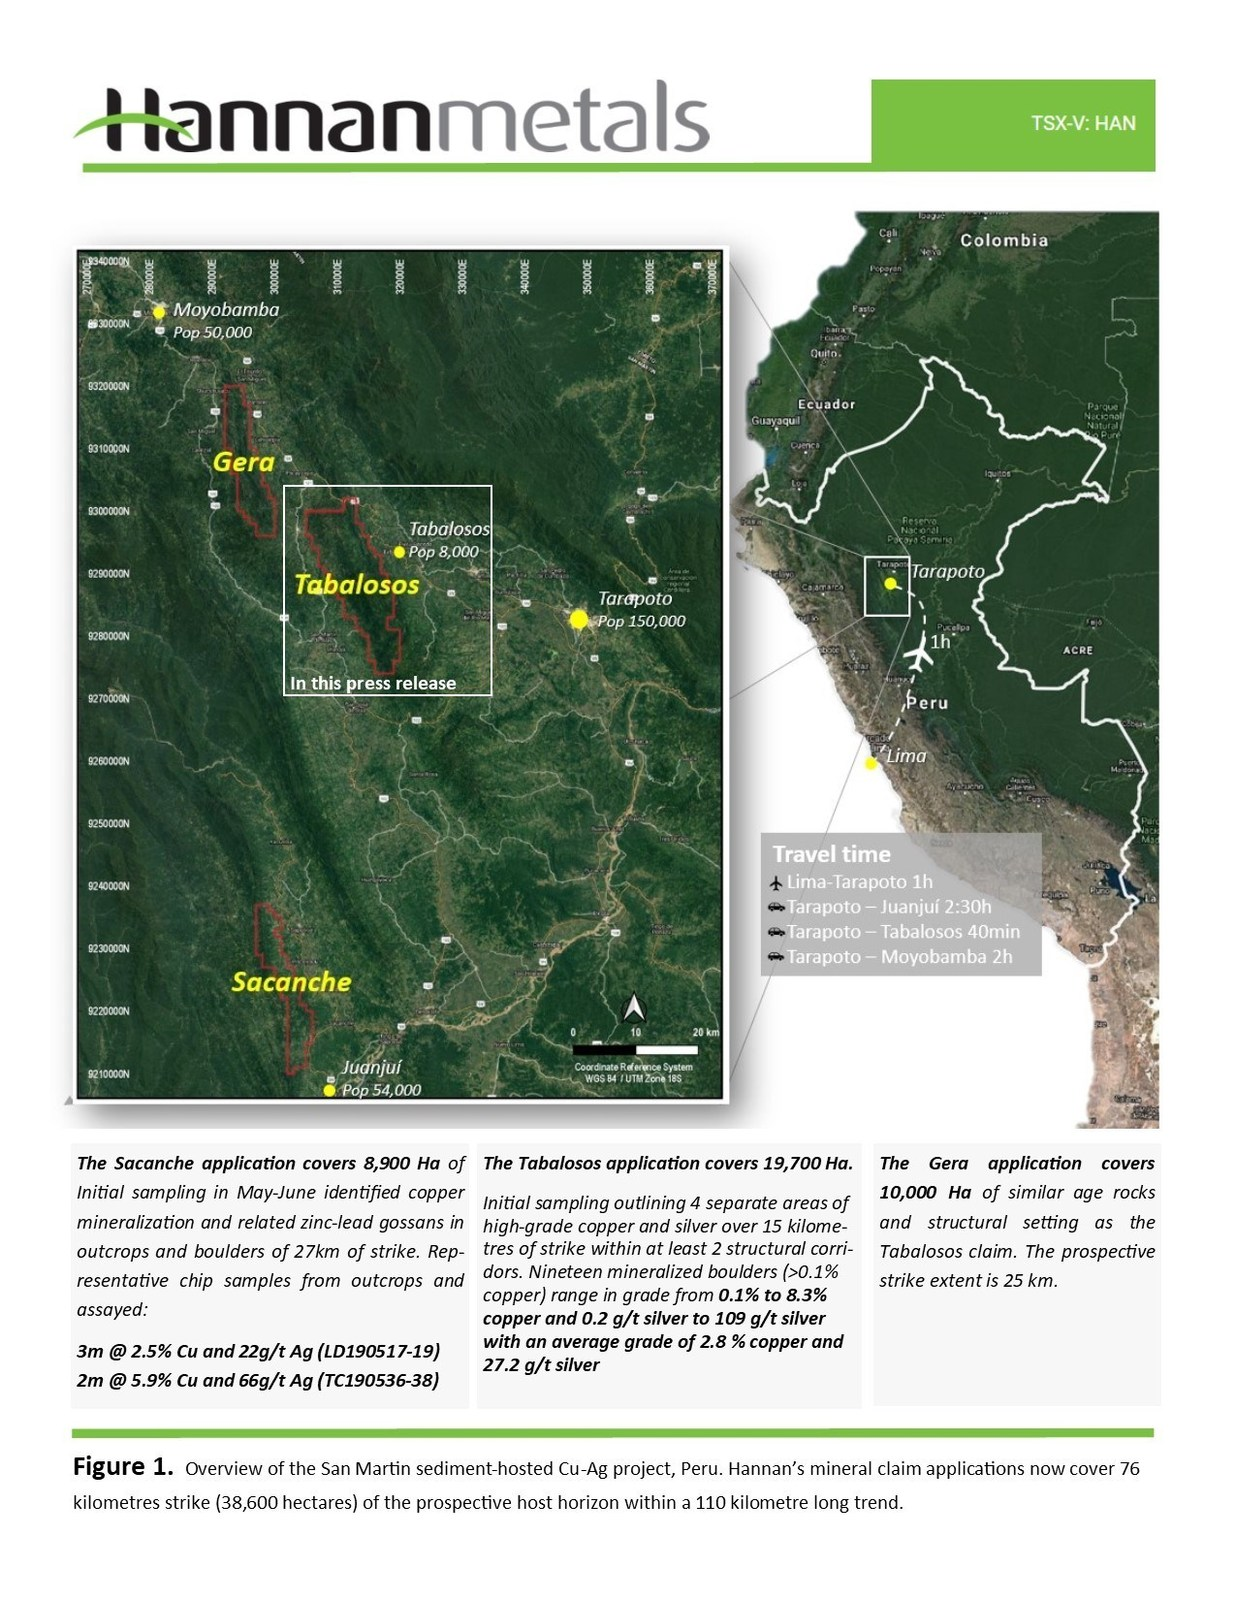 Figure 1. Overview of the San Martin sediment-hosted Cu-Ag project, Peru. Hannan's mineral claim applications now cover 76 kilometres strike of the prospective host horizon within a 110 kilometre long trend.